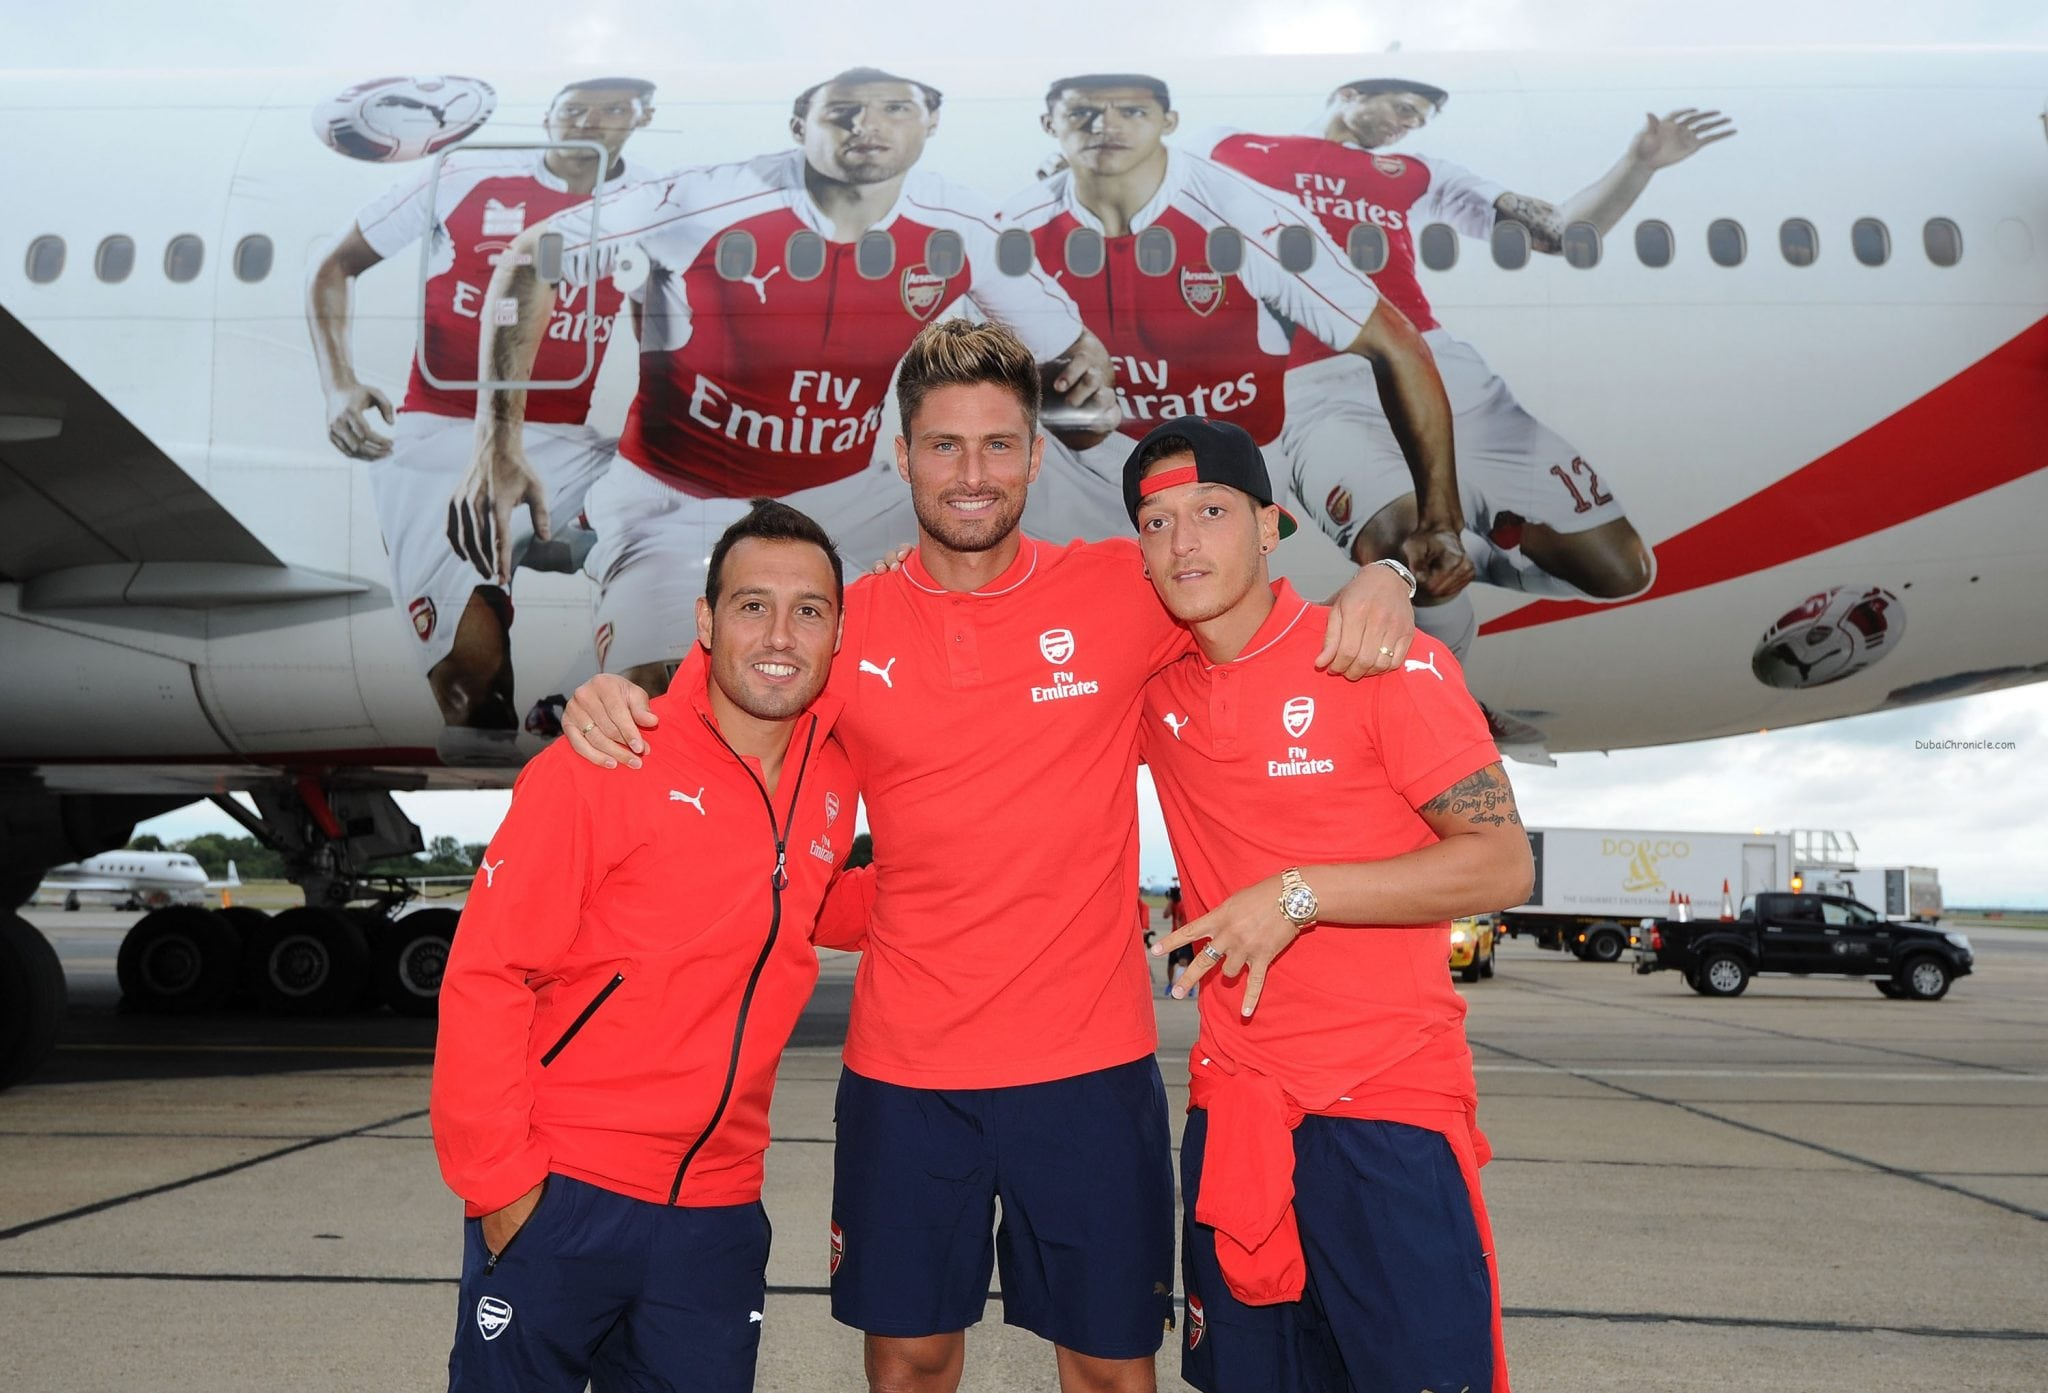 Santi Cazorla, Olivier Giroud and Mesut Ozil of Arsenal in front of their images on the Emirates plane at Stansted Airport on July 12, 2015 in London, England. (Photo by David Price/Arsenal FC via Getty Images) *** Local Caption *** Santi Cazorla; Olivier Giroud; Mesut Ozil